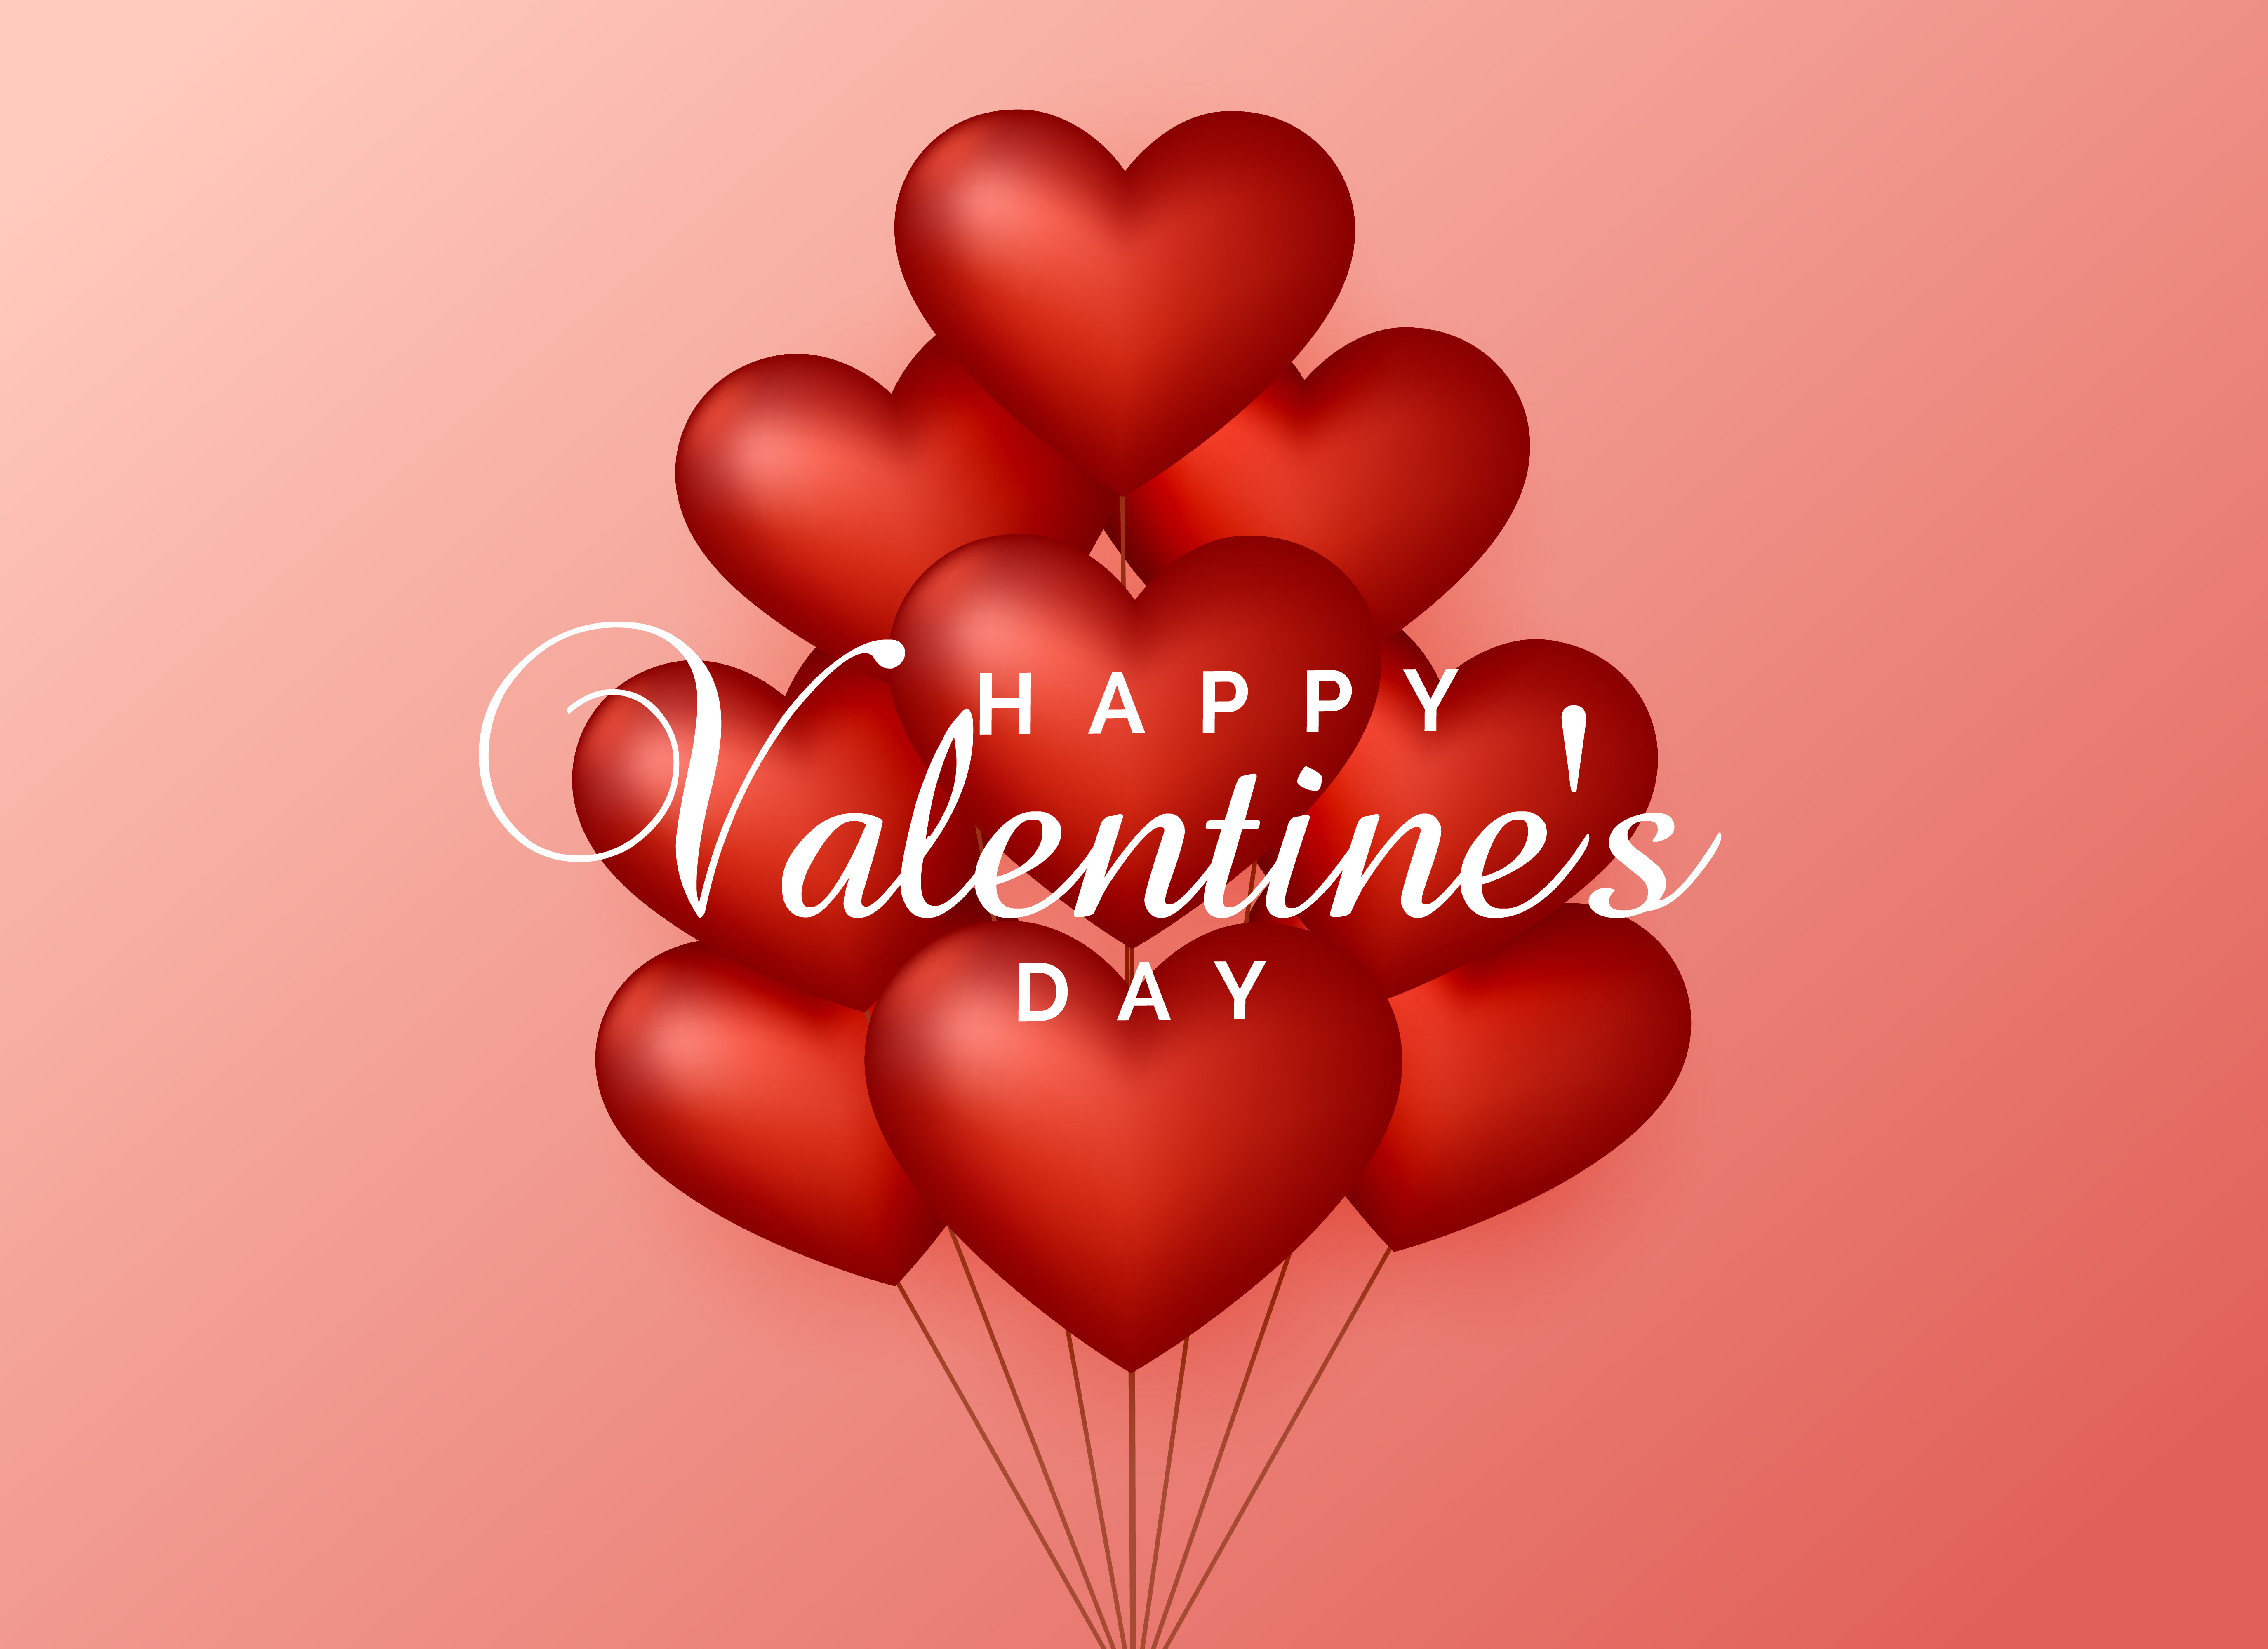 heart balloons on pink background for valentine u0026 39 s day